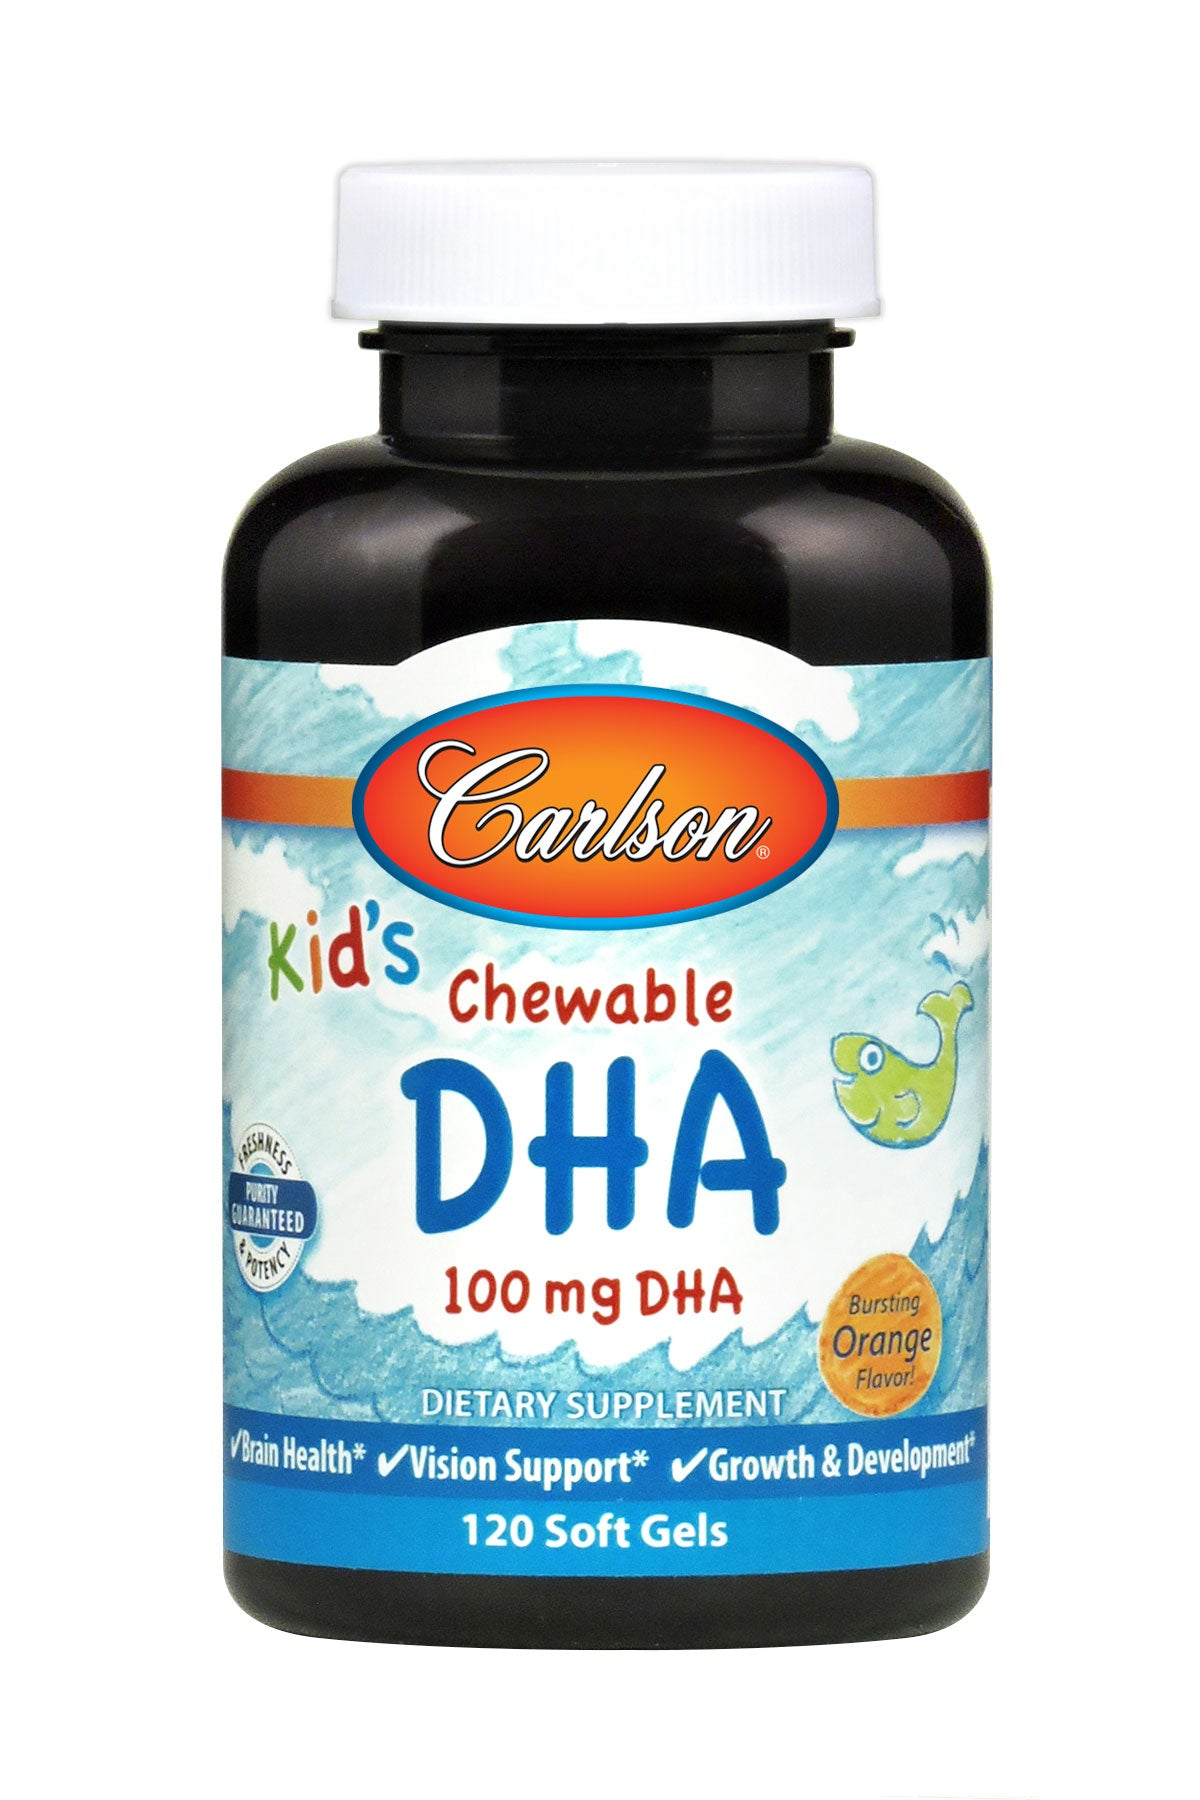 Kids Chewable Dha 120